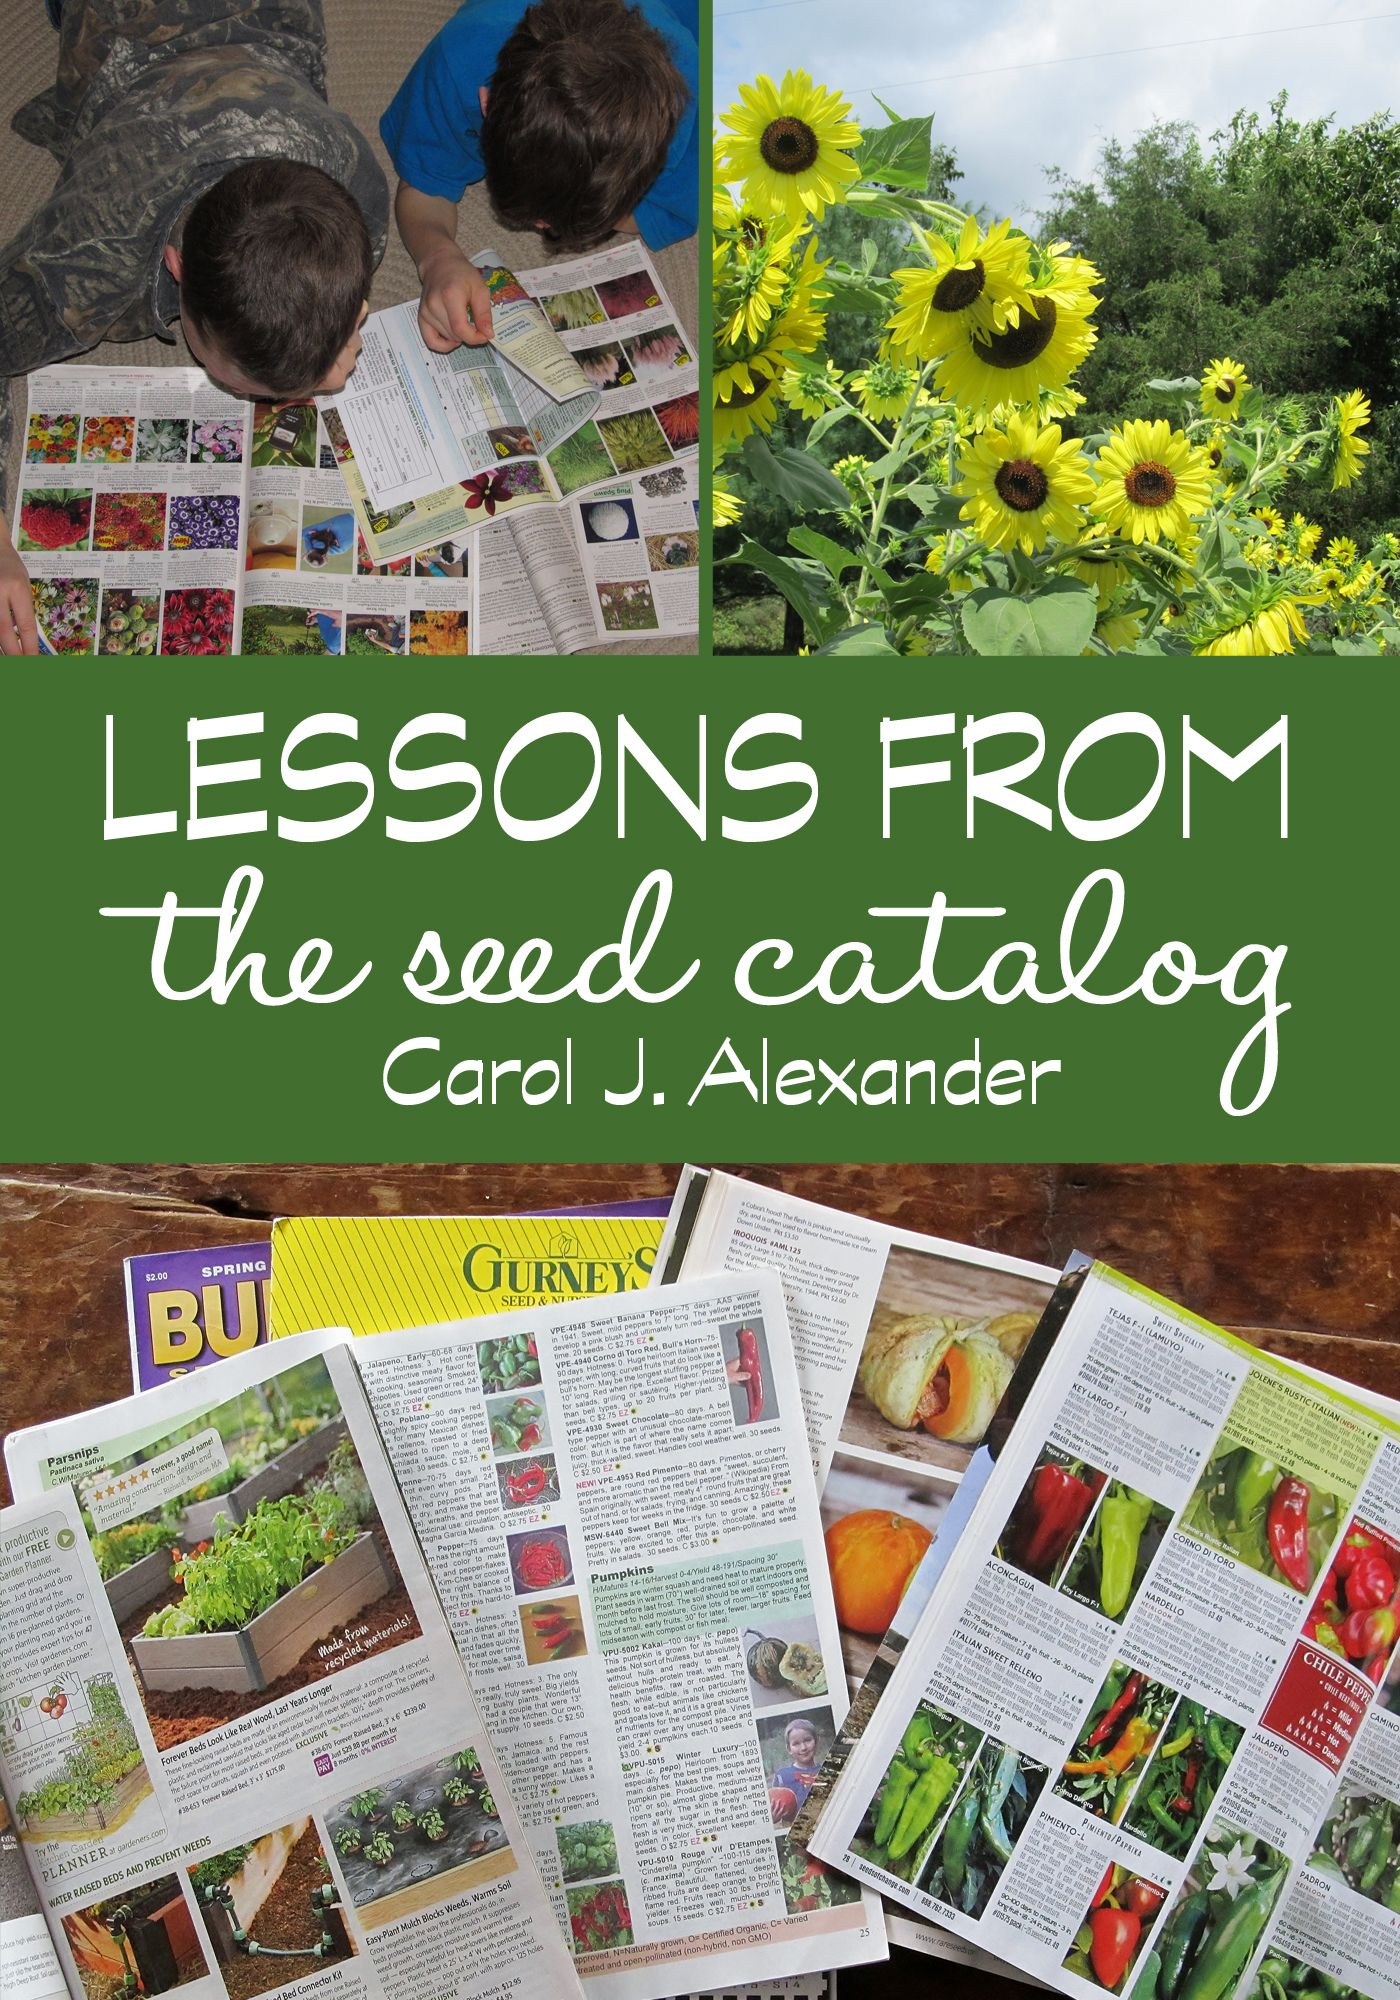 Lessons From The Seed Catalog Has At Least 50 Lessons In